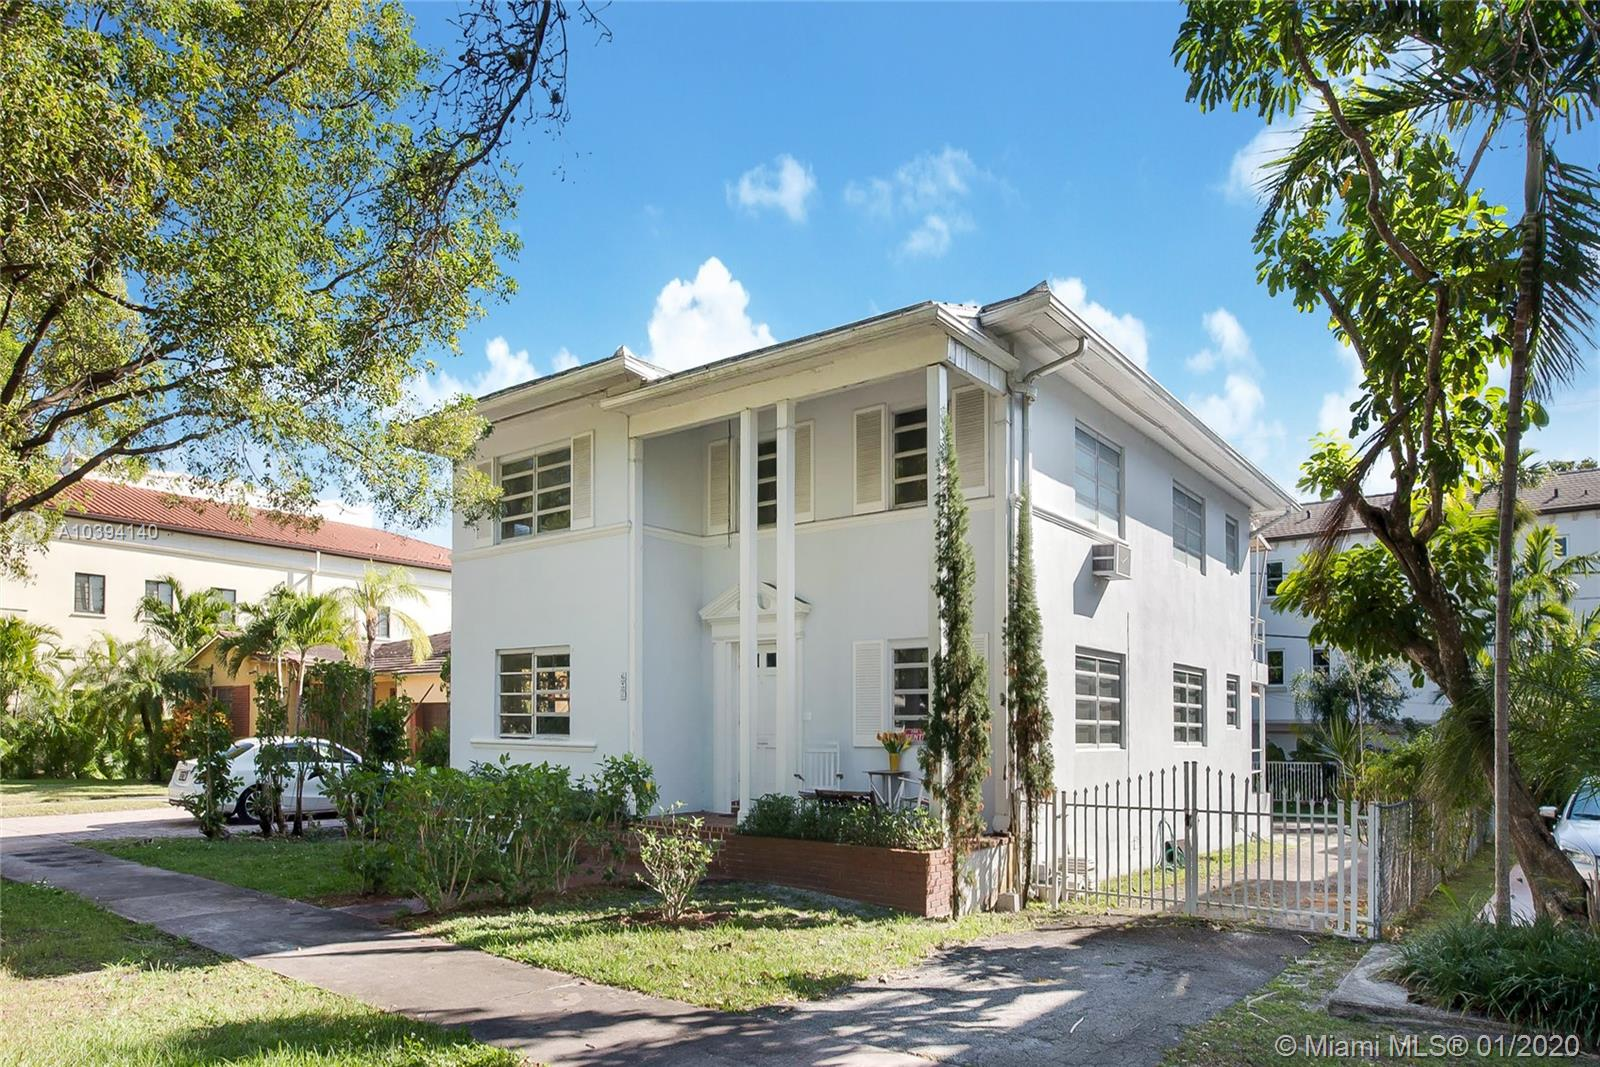 Details for 636 Malaga Ave, Coral Gables, FL 33134